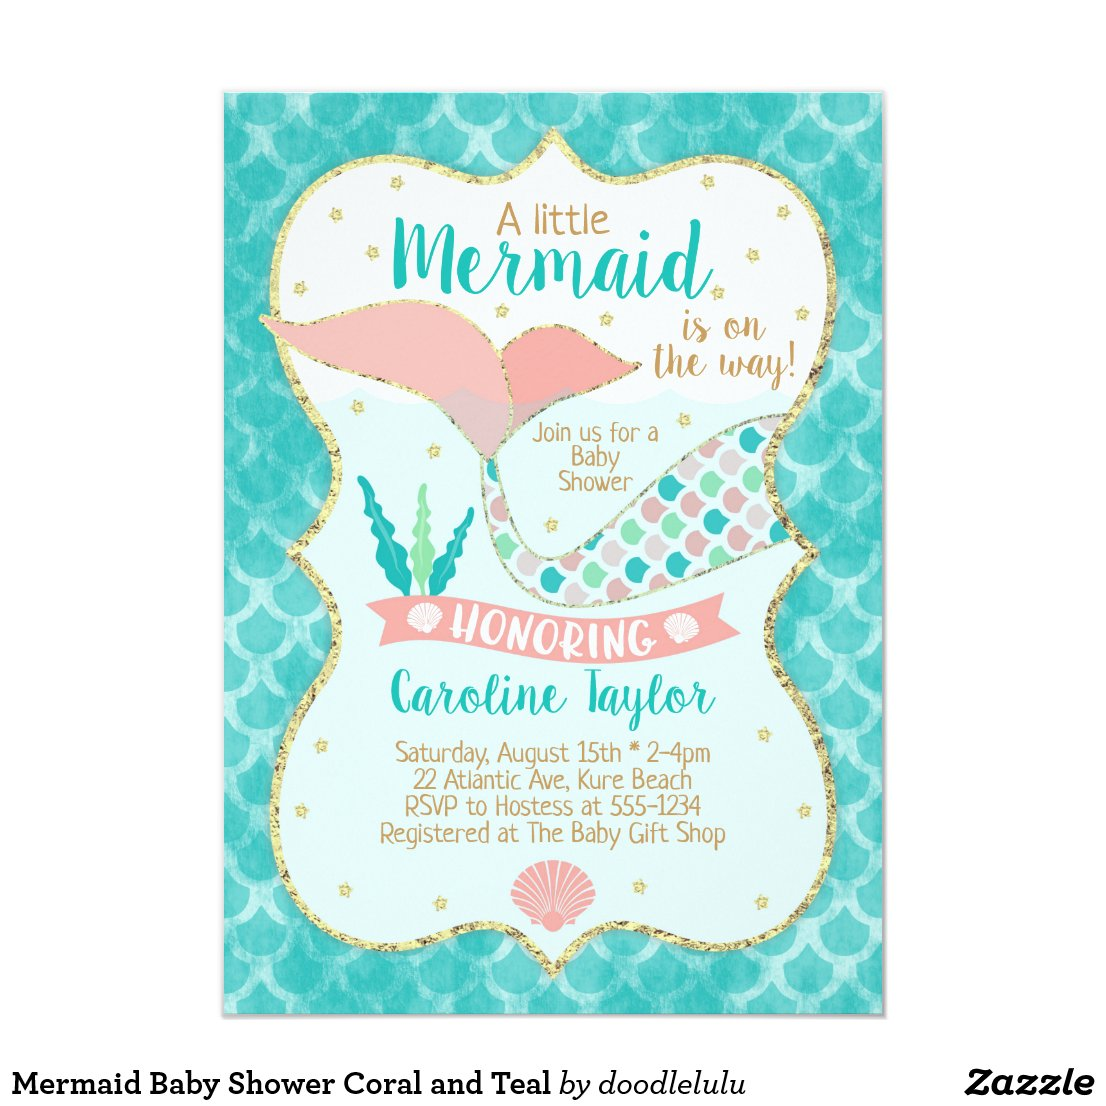 Mermaid Baby Shower Coral and Teal Invitation